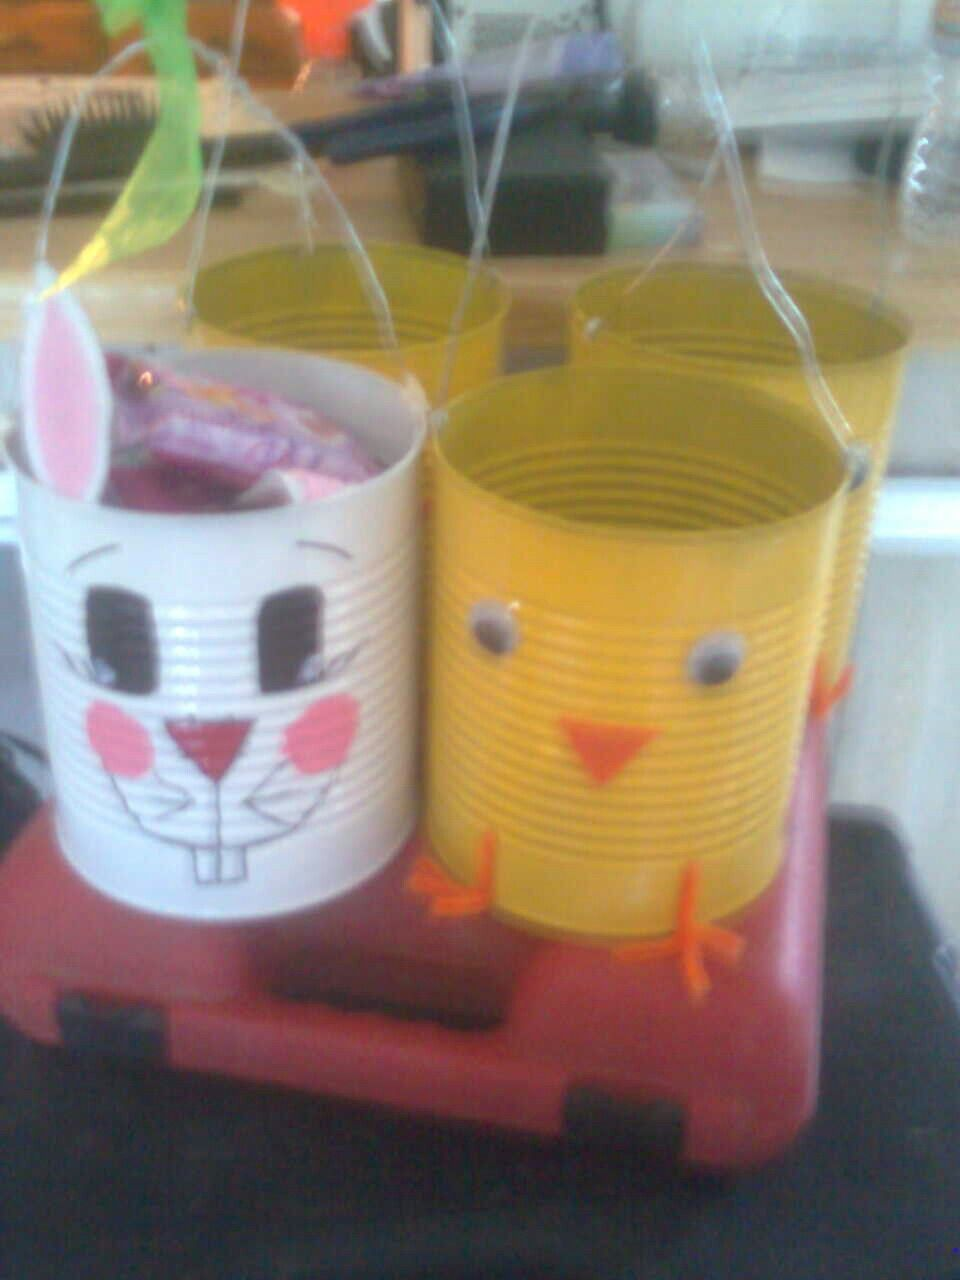 Easter baskets made from value size tin cans 4 hunter connor easter baskets made from value size tin cans easter craftseaster projects kids craftsclassroom projectsclassroom ideasspring negle Choice Image